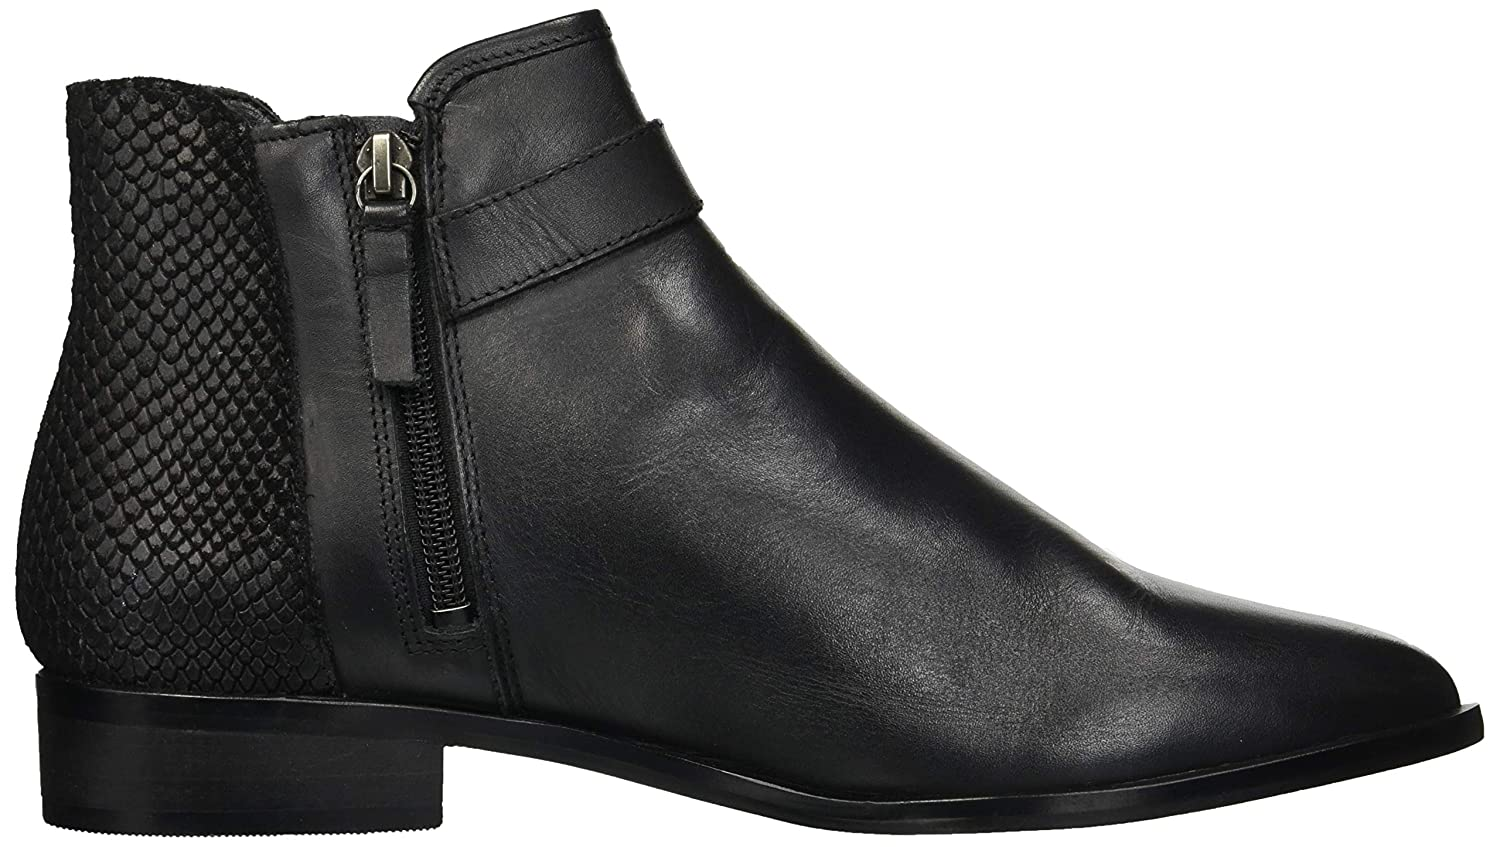 Kenneth Cole REACTION Womens Date 2 Nite Ankle Bootie Boot